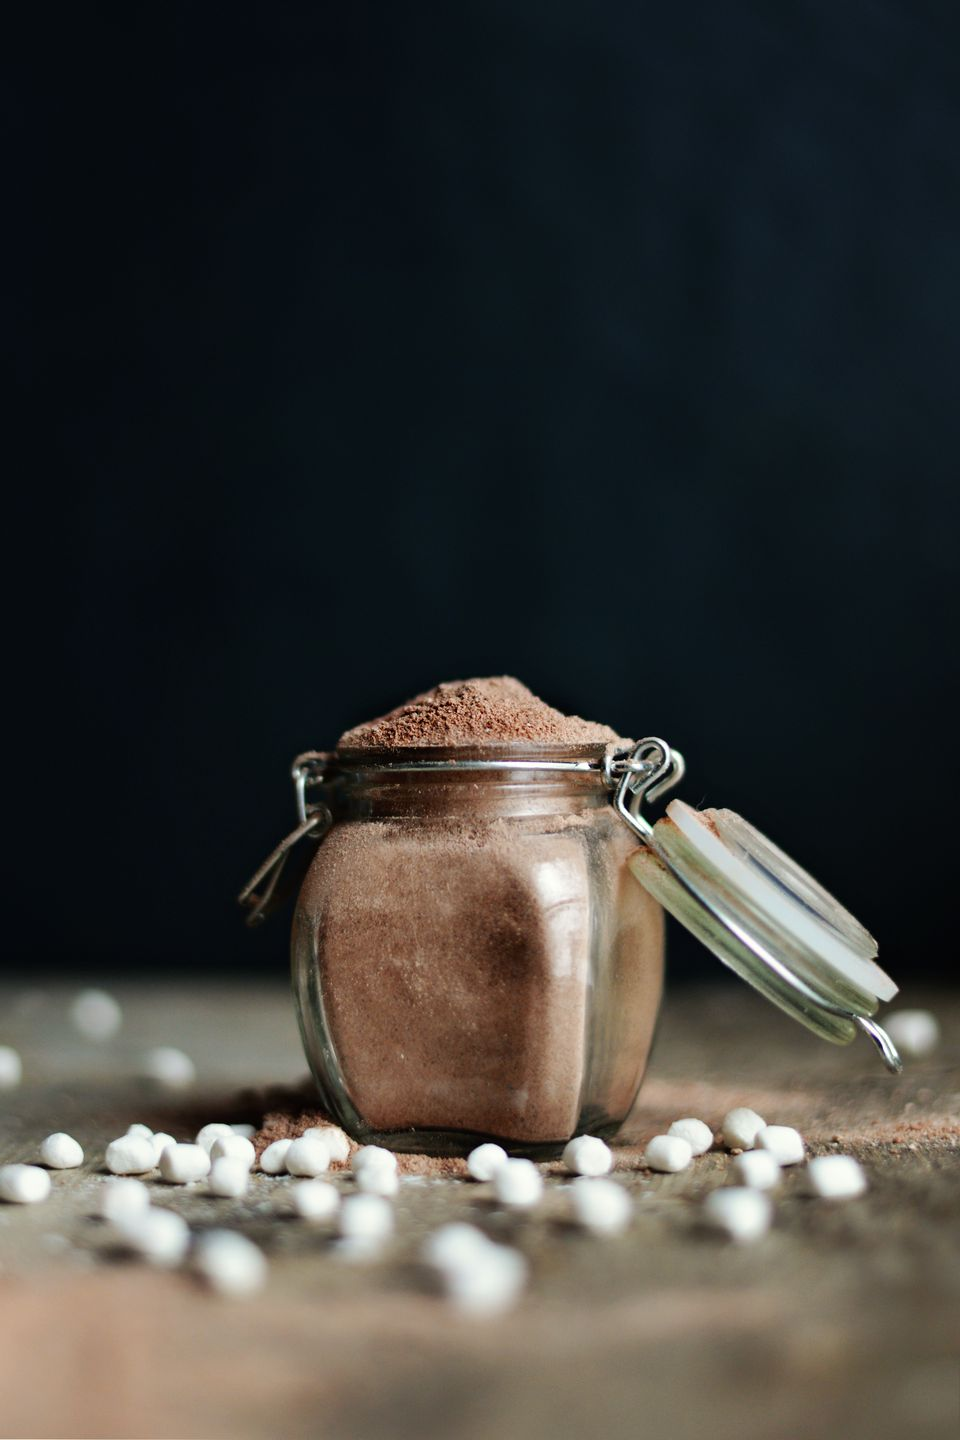 Hot cocoa mix with marshmallows